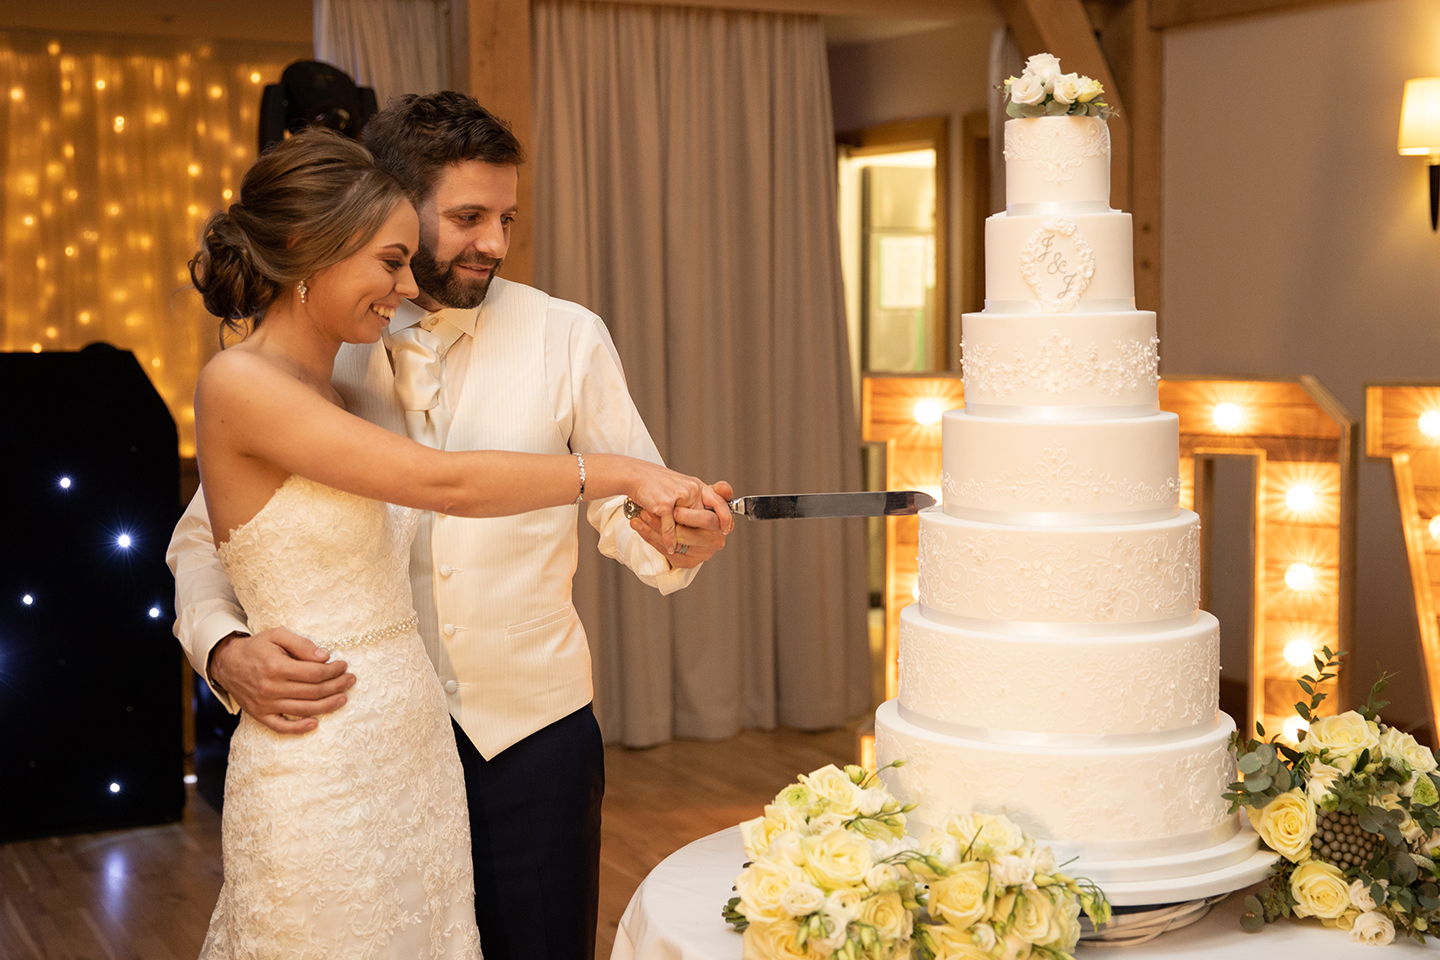 The newlyweds cut their wedding cake during their wedding reception at Bassmead Manor Barns